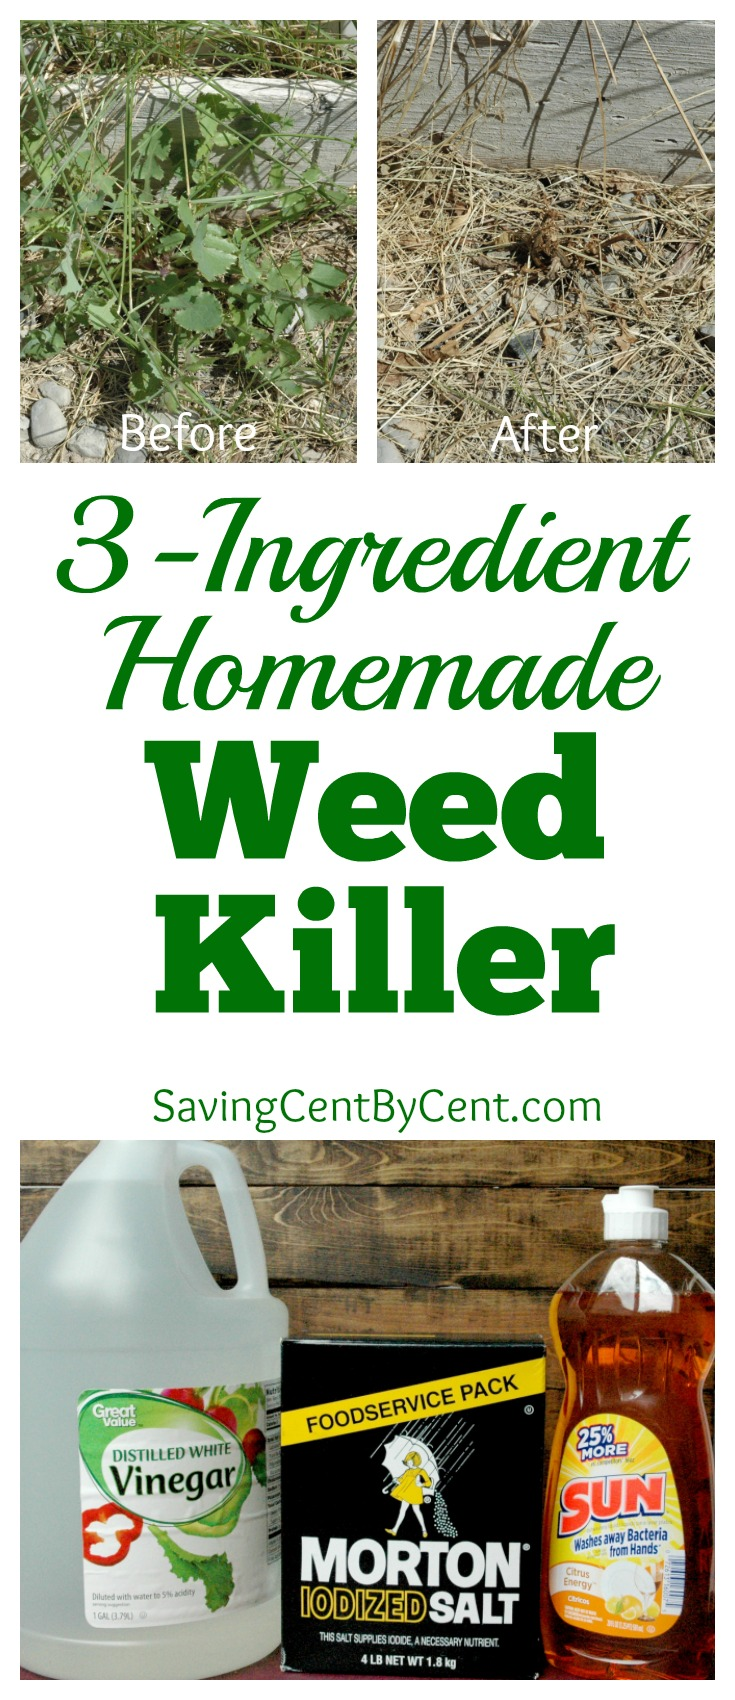 3-Ingredient Homemade Weed Killer